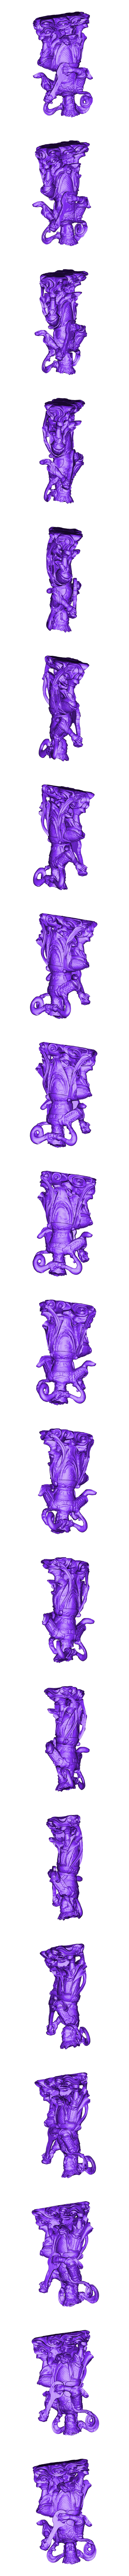 120120.stl Download free STL file 4 Guardians on South Gate of Heaven Palace • 3D printable template, stronghero3d